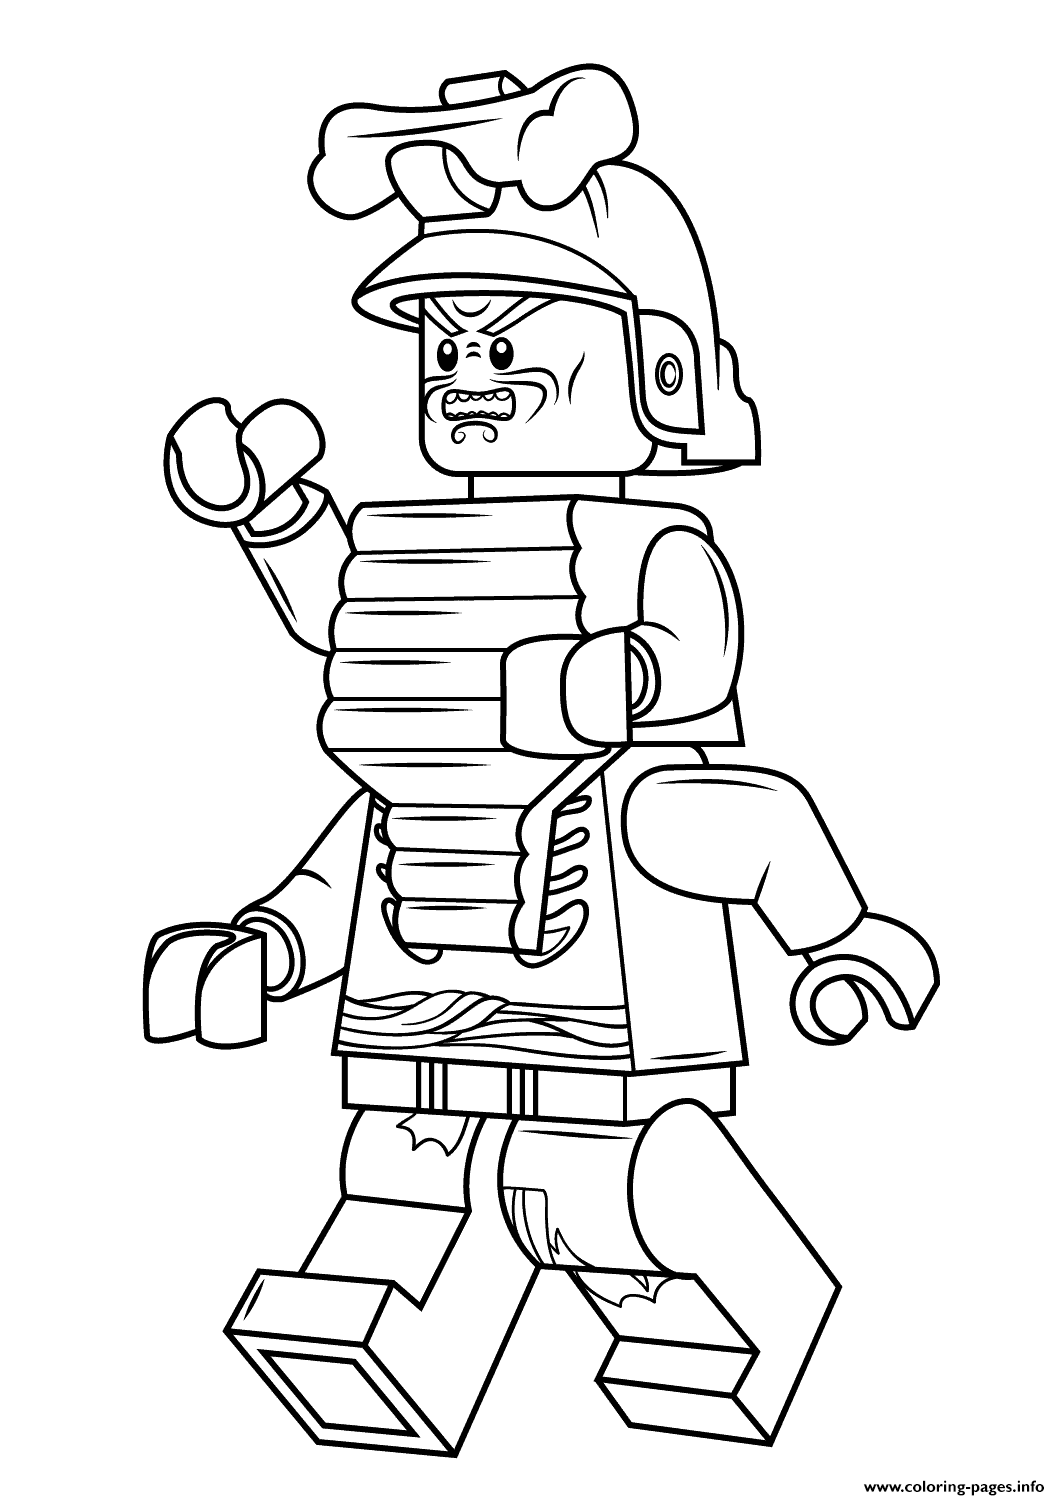 Star Wars Bespin Duel Toys R Us Exclusive True North Bricks Lego Coloring Pages Lego Coloring Doodle Coloring